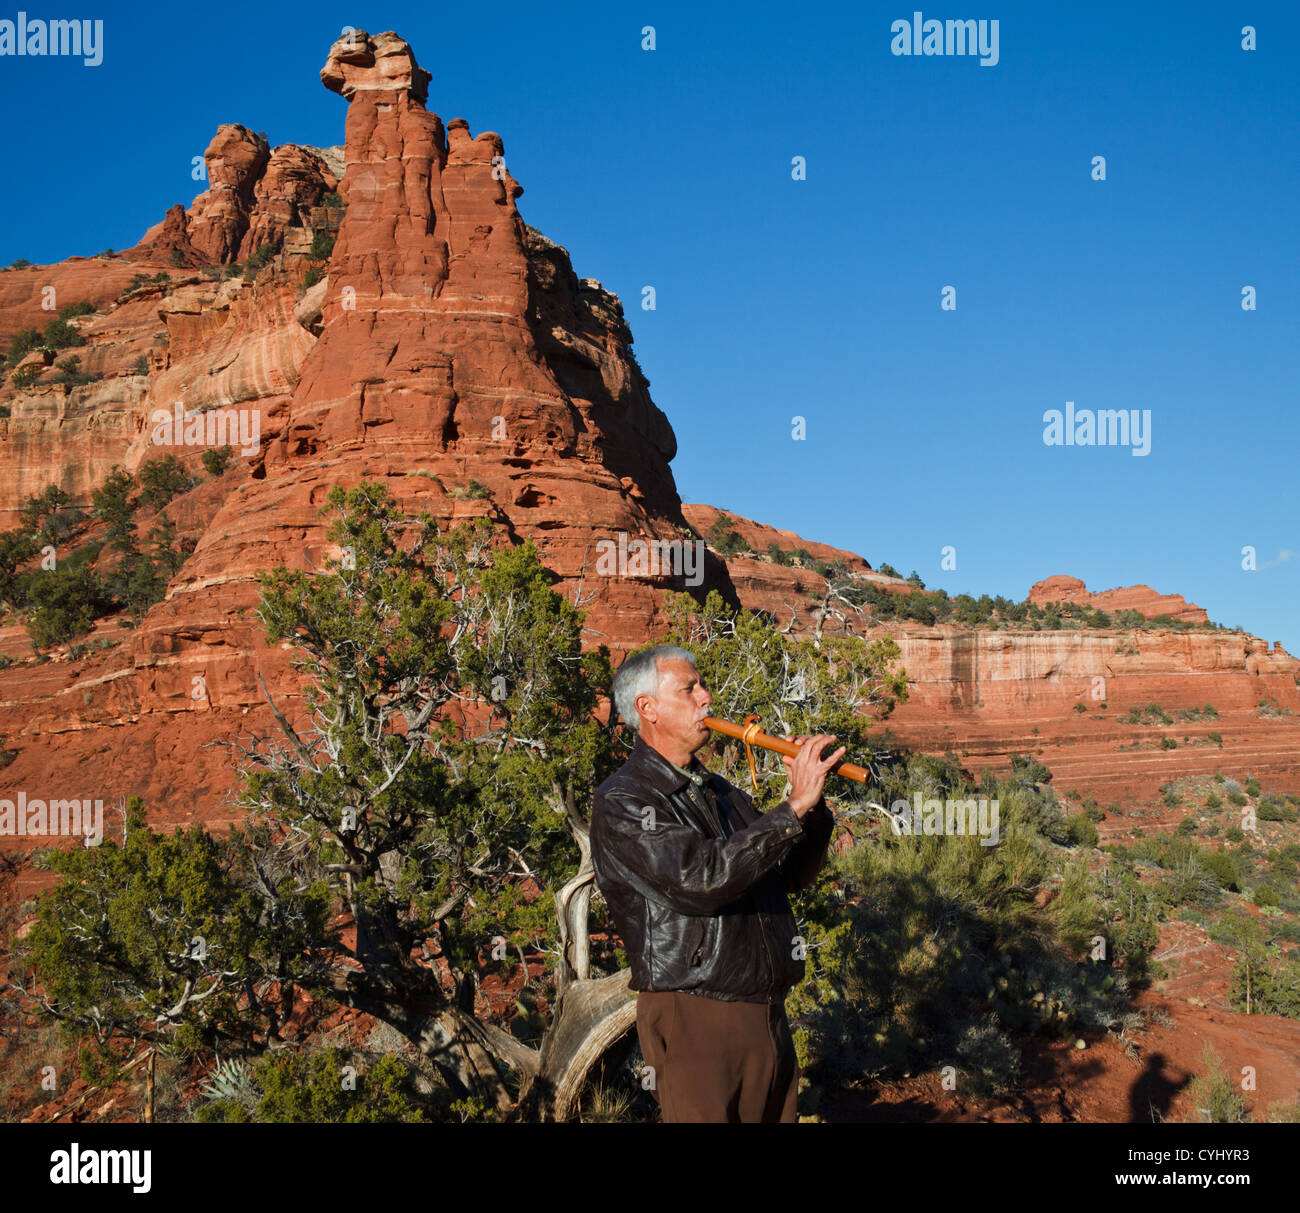 Arizona man plays Native American flute by Kachina Woman formation in Sedona, reached by hiking the Vista Trail - Stock Image